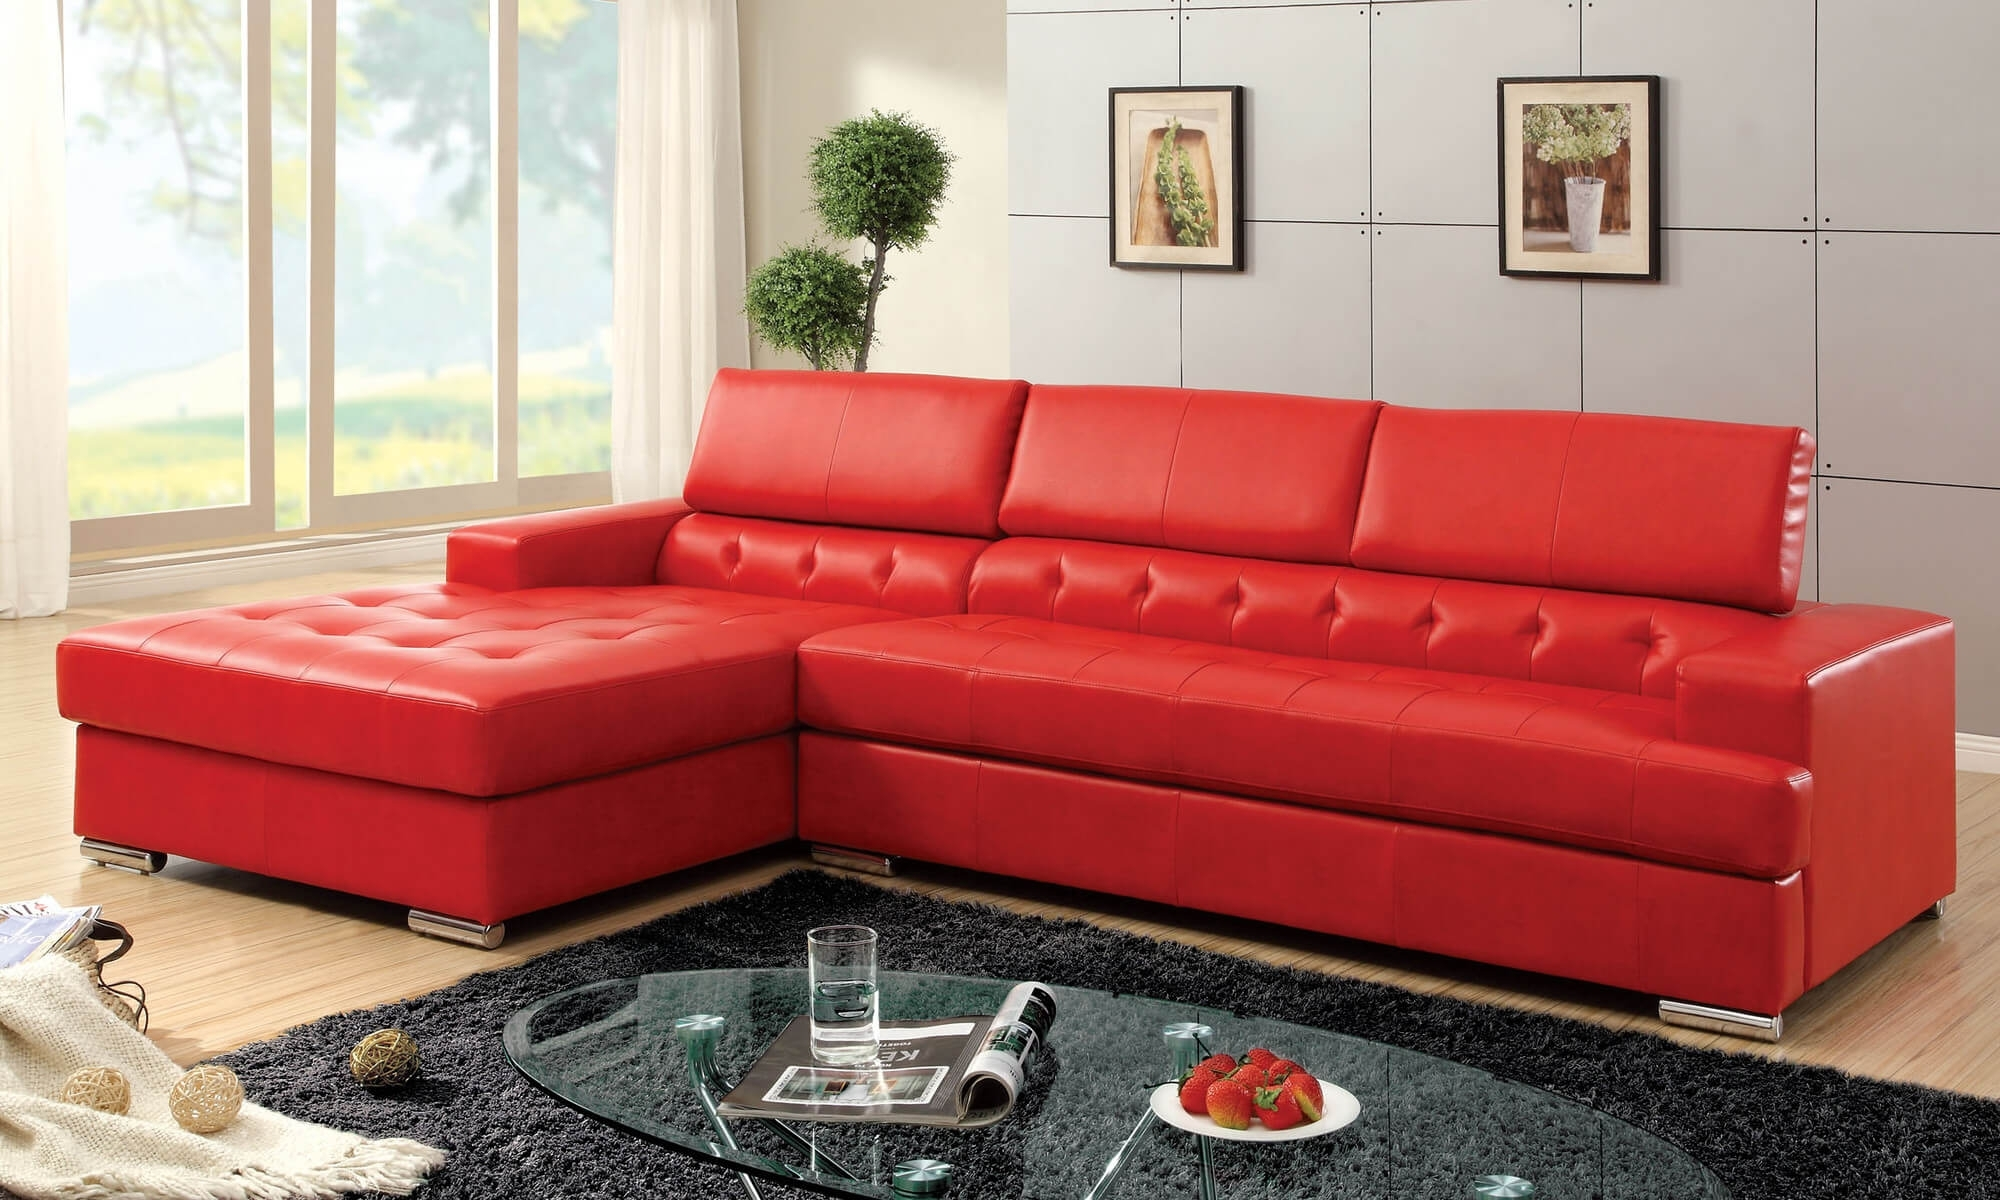 Reliable Red Modern Sofa 18 Stylish Sectional Sofas | Www pertaining to Kingston Ontario Sectional Sofas (Image 7 of 10)